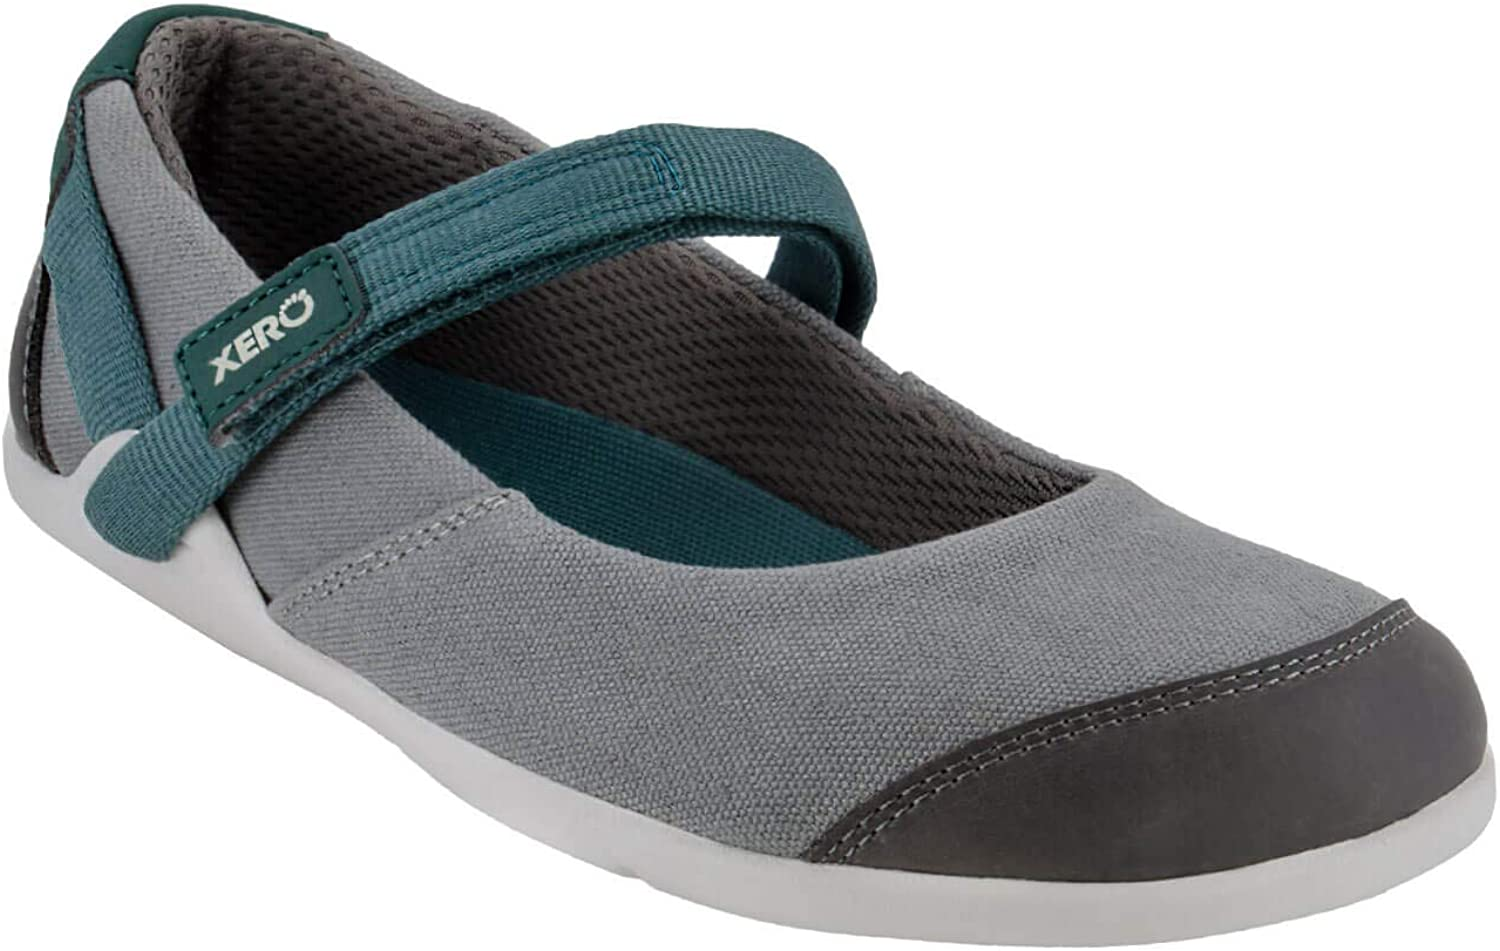 Xero shoes Cassie - Women's Mary-Jane Style Casual Canvas Barefoot-Inspired Minimalist Lightweight Zero-Drop shoes